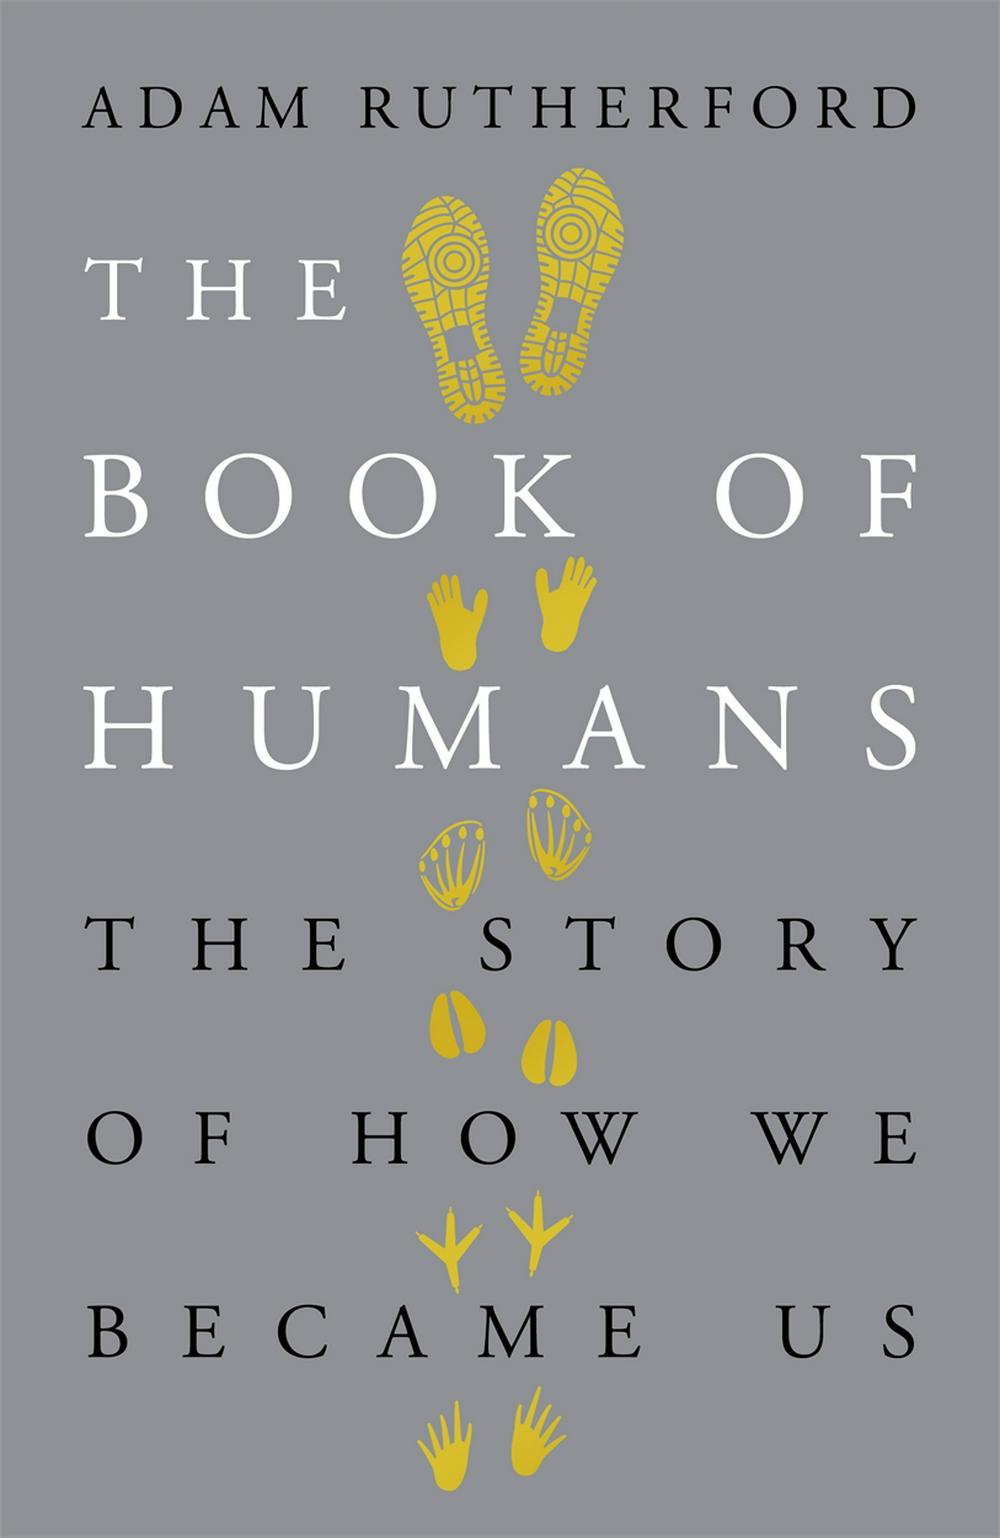 The Book of HumansThe Story of How We Became Us